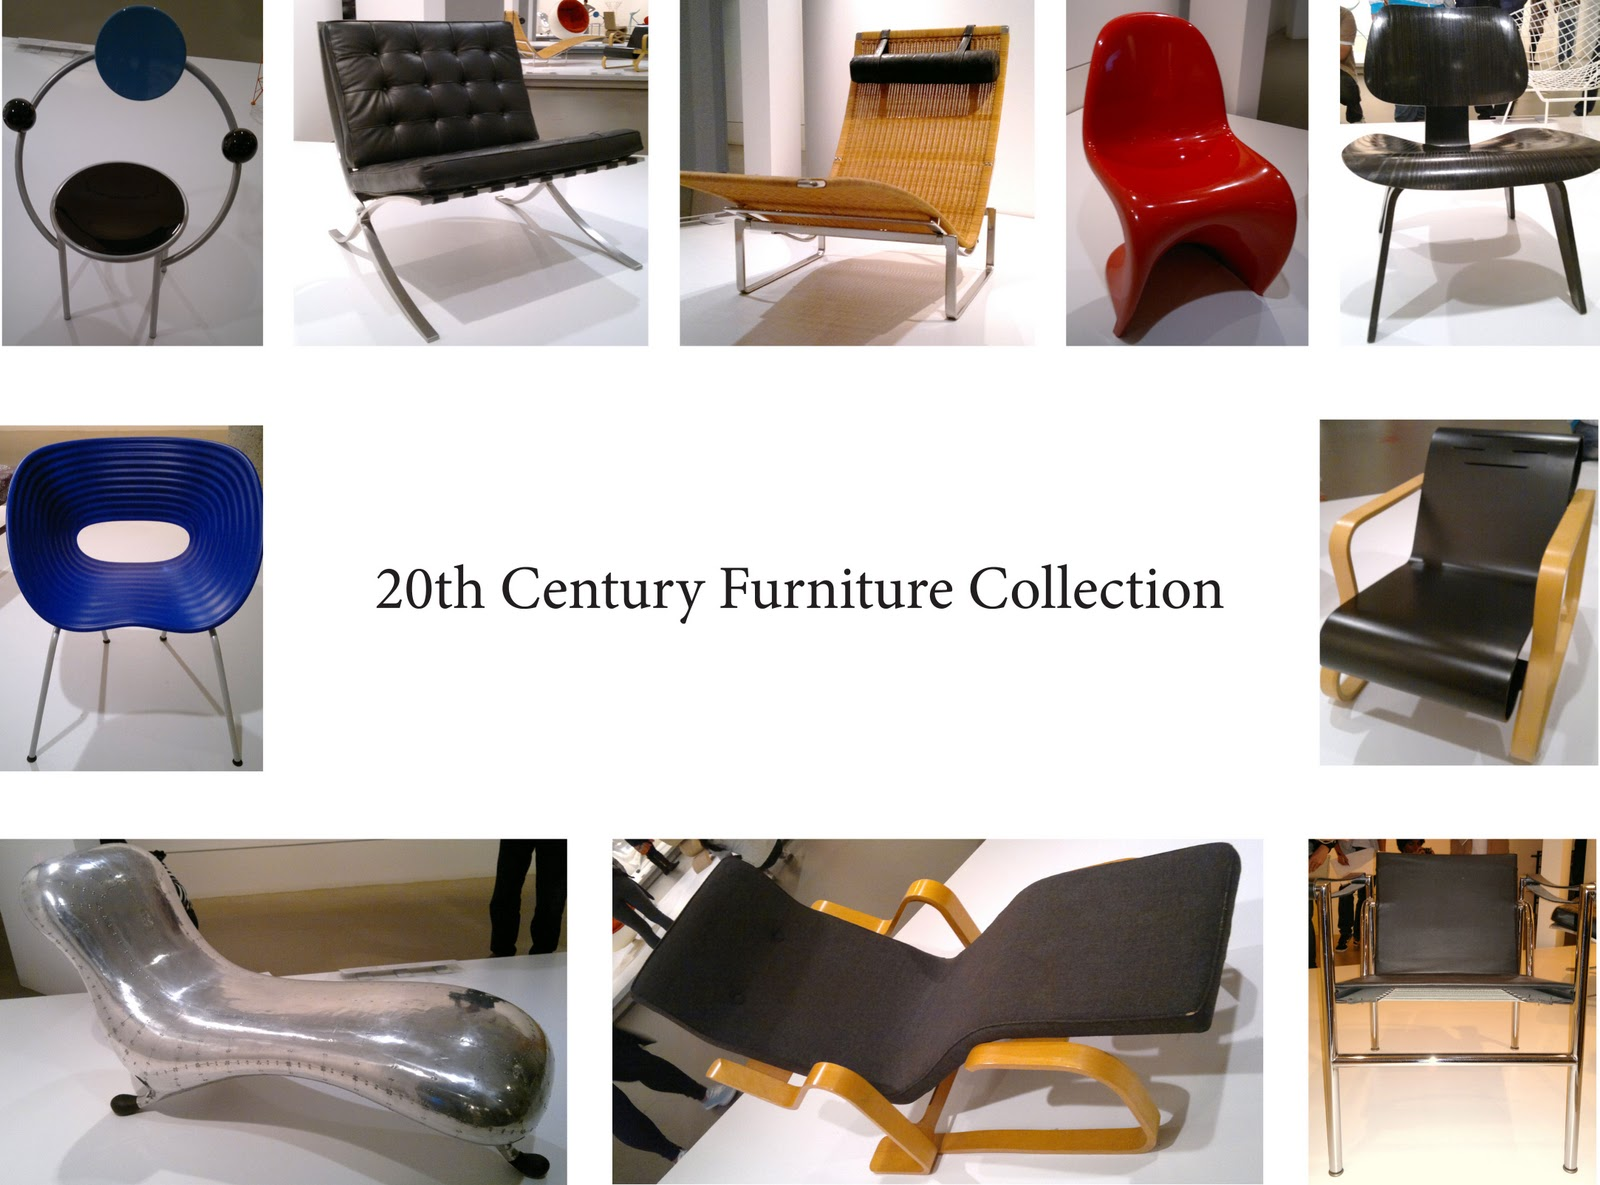 furniture sweepstakes essay It might help you to print out the sweepstakes rules and highlight the most important elements, or to write down notes and keep them close at hand if you summarize the relevant rules in a checklist, you can easily check the requirements off when you have finished your essay to ensure you haven't overlooked anything.